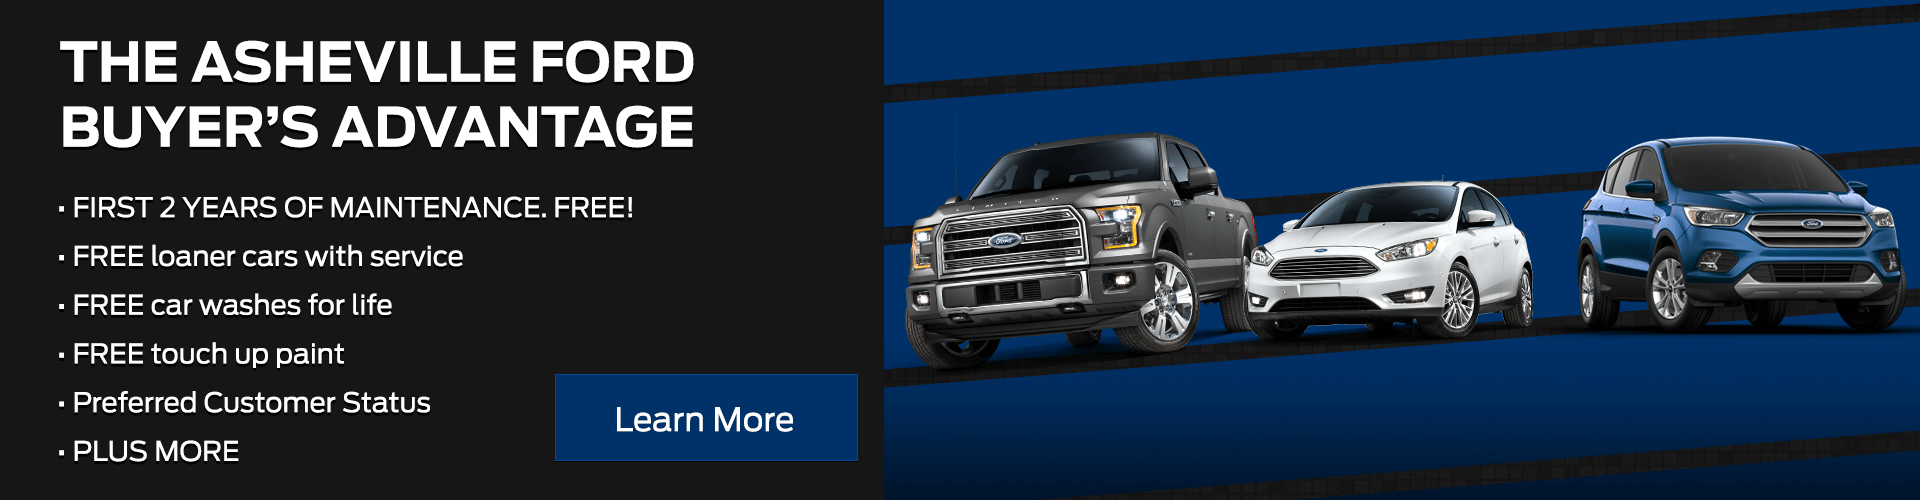 The Asheville Ford Buyer's Advantage